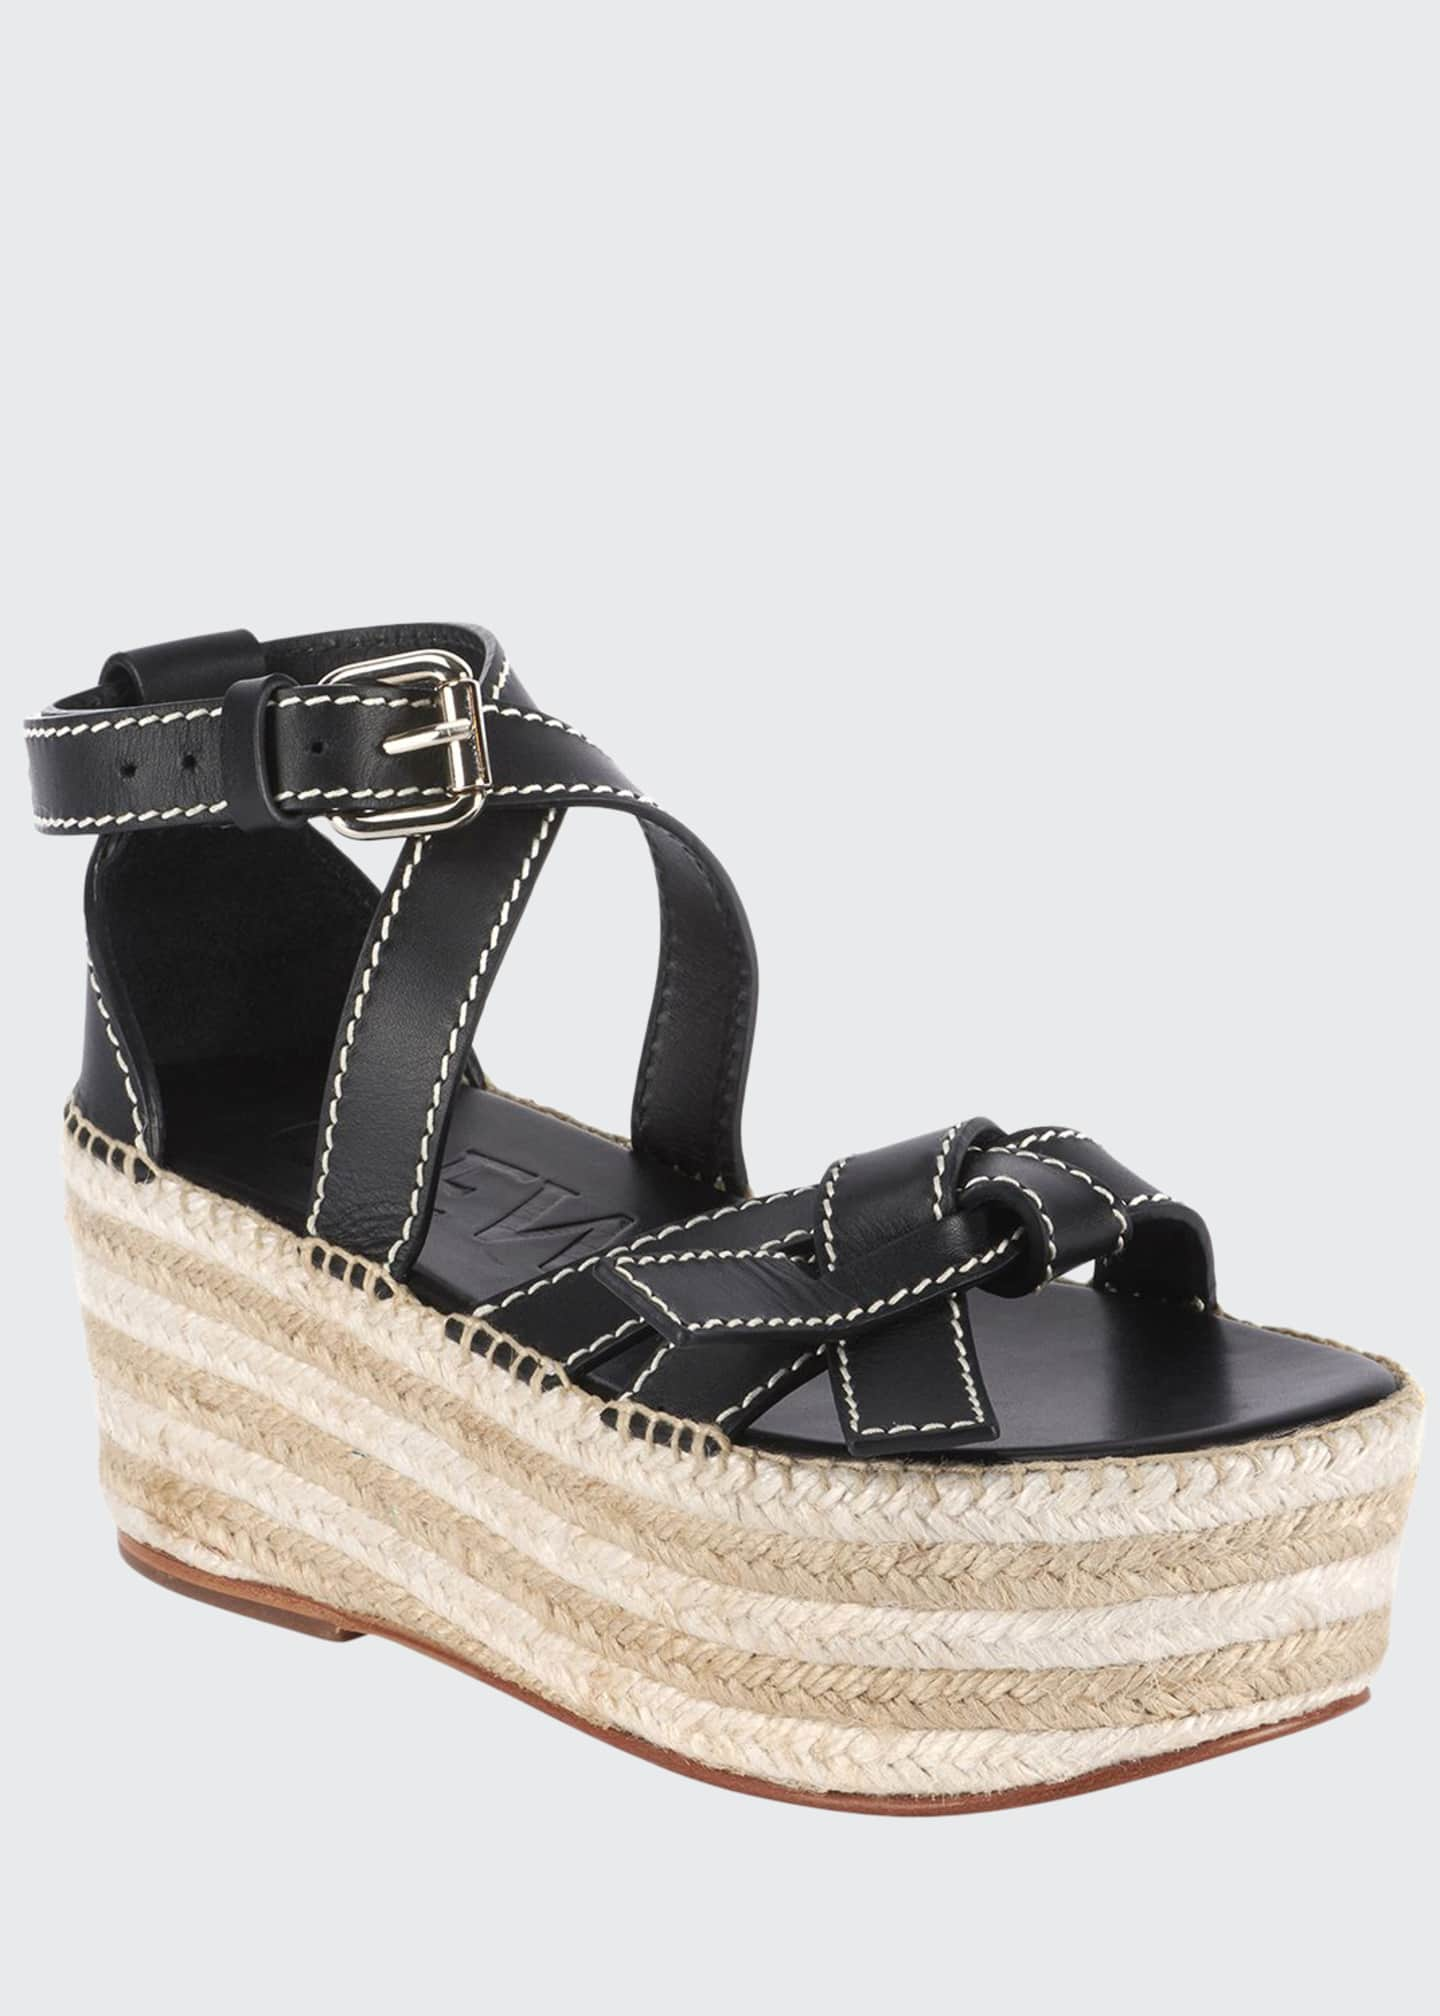 Loewe Gate Wedge High Espadrilles